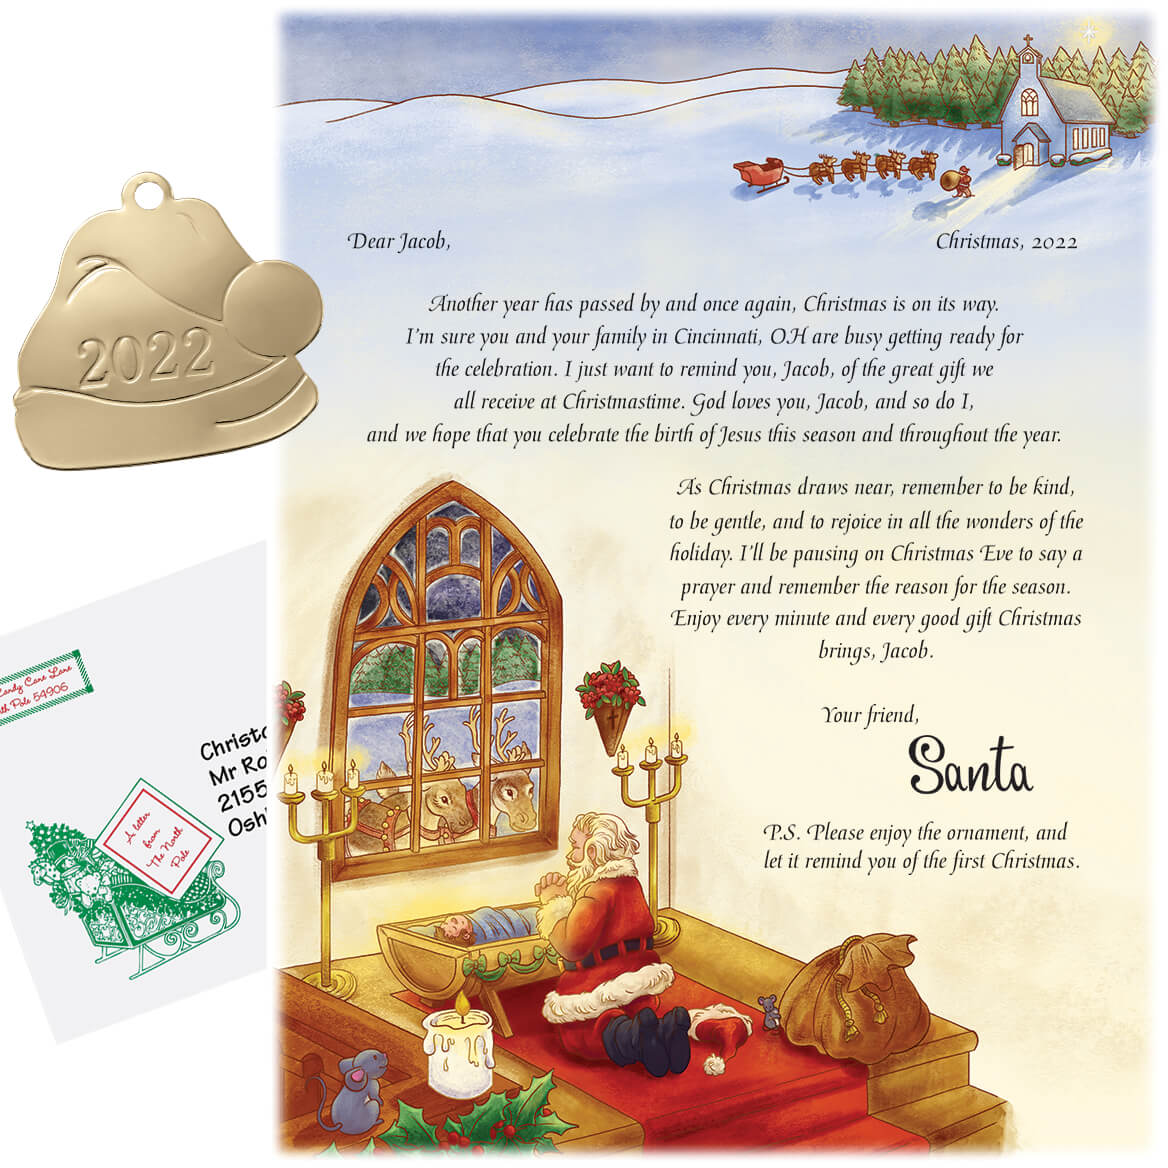 Inspirational Personalized Letter From Santa - Miles Kimball